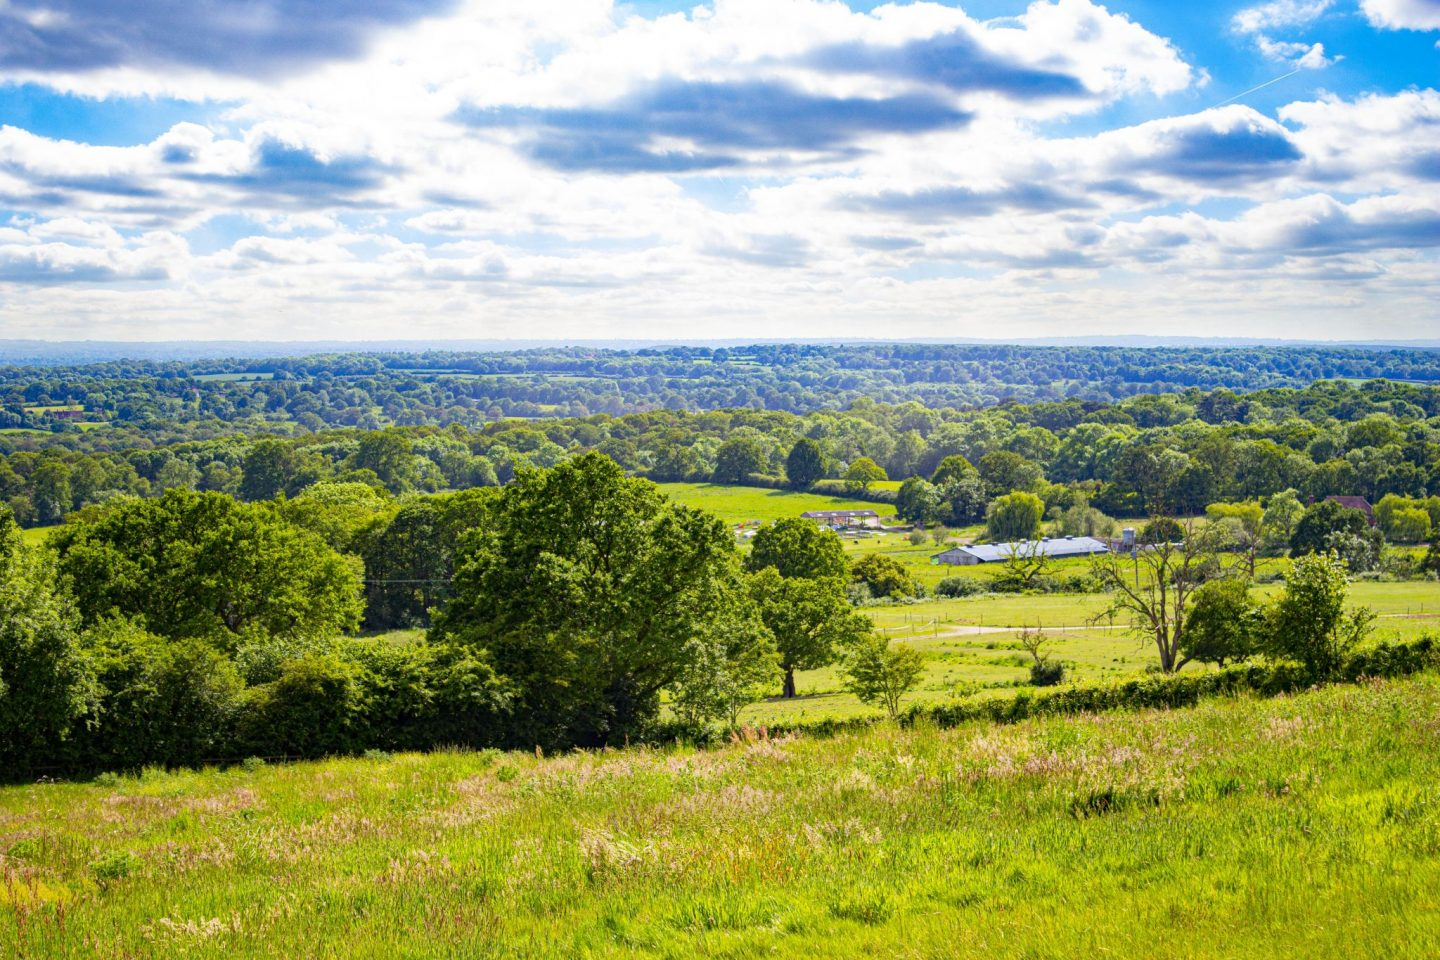 Photograph of English countryside in early summer showing green and pleasant land.